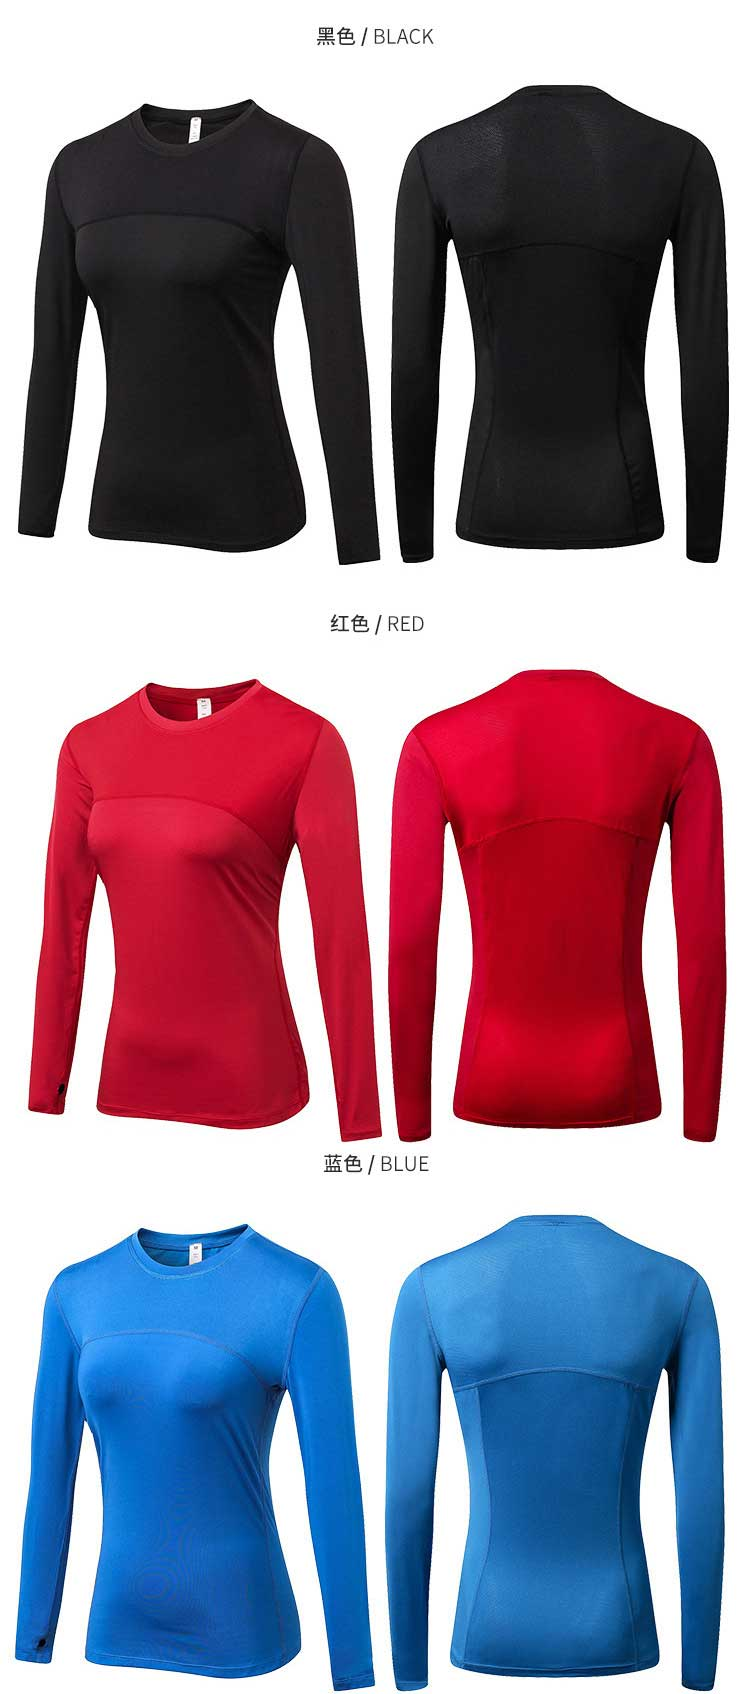 color-black-red-blue-of-sports-t-shirts-for-women